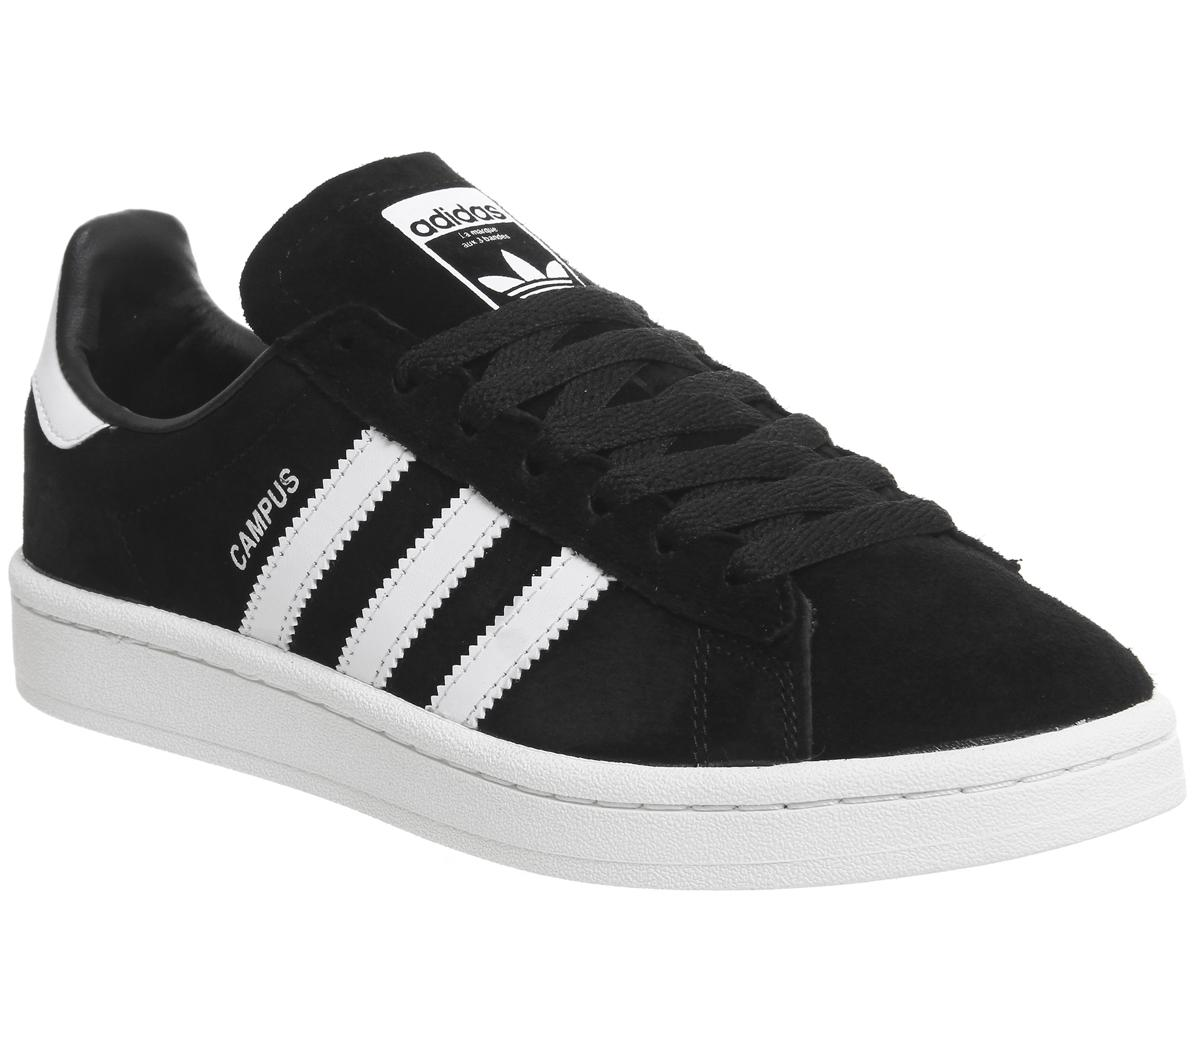 Condicional riñones Expulsar a  adidas campus shoes Online Shopping for Women, Men, Kids Fashion &  Lifestyle|Free Delivery & Returns! -